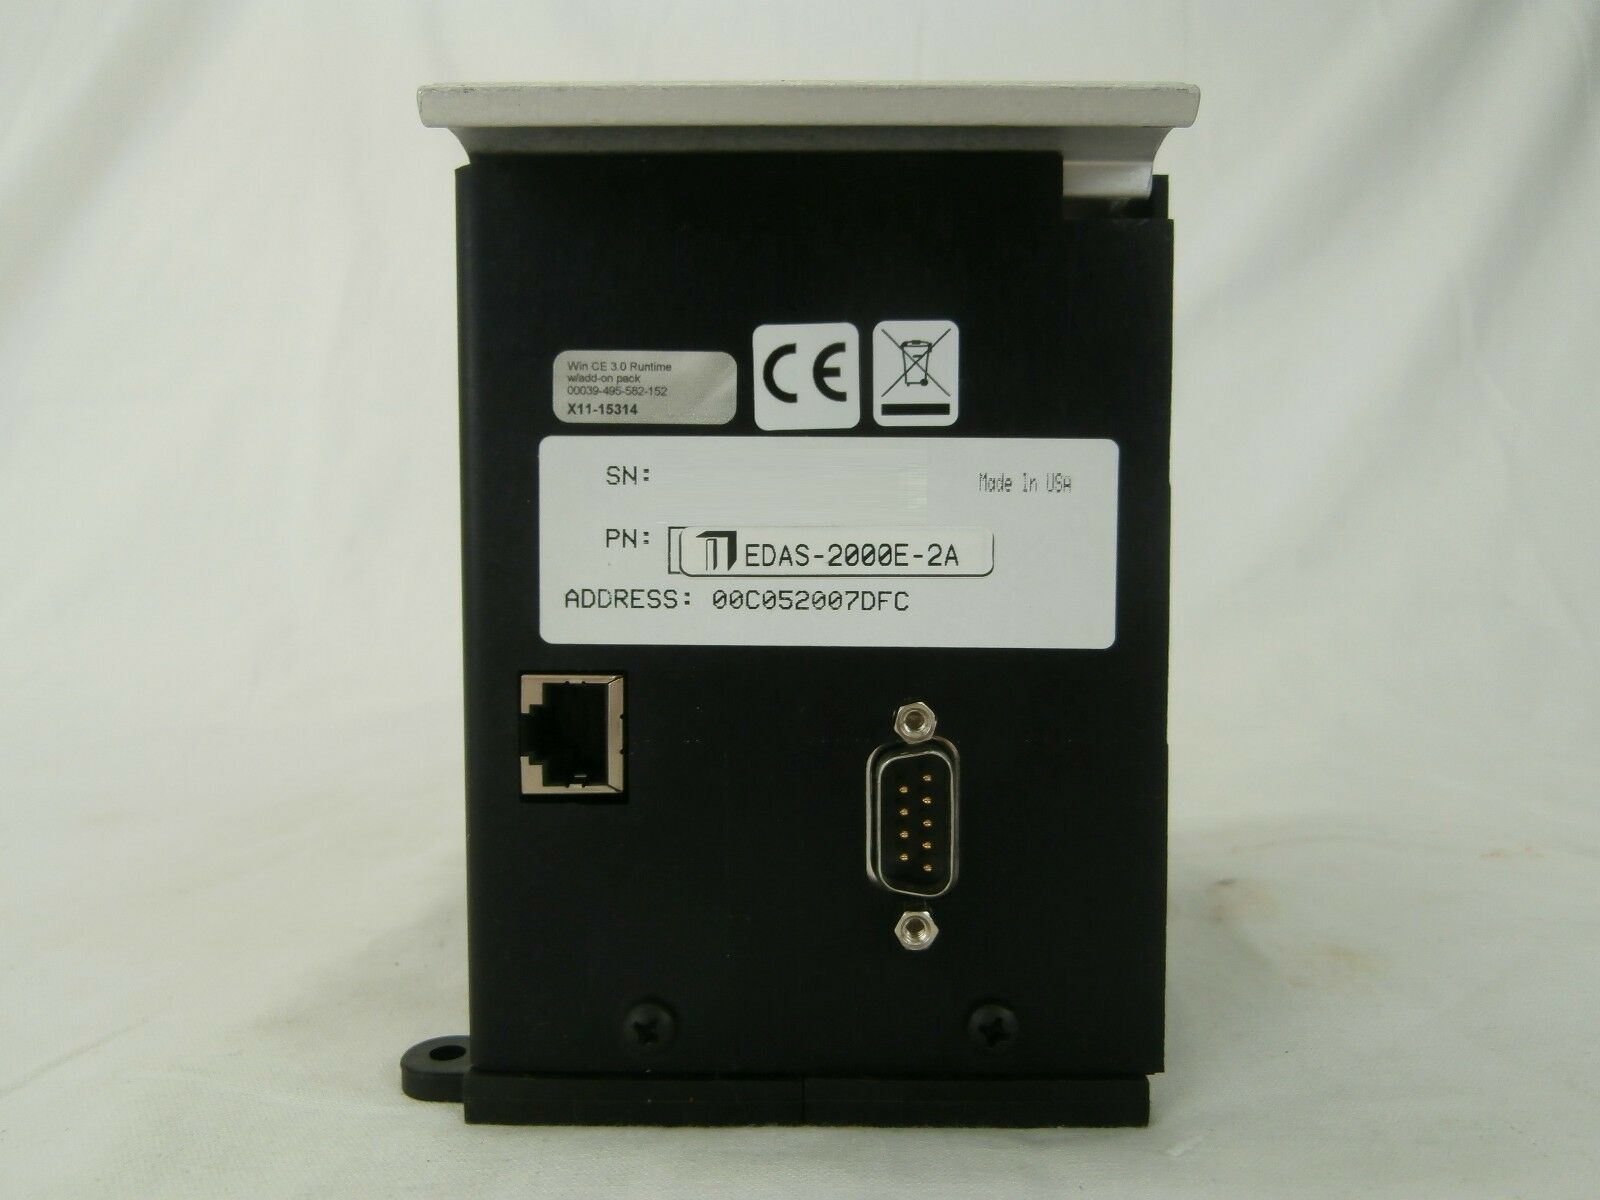 Intelligent Instrumentation EDAS-2000E-2A PLC Control Unit EDAS-2000E-1 Used